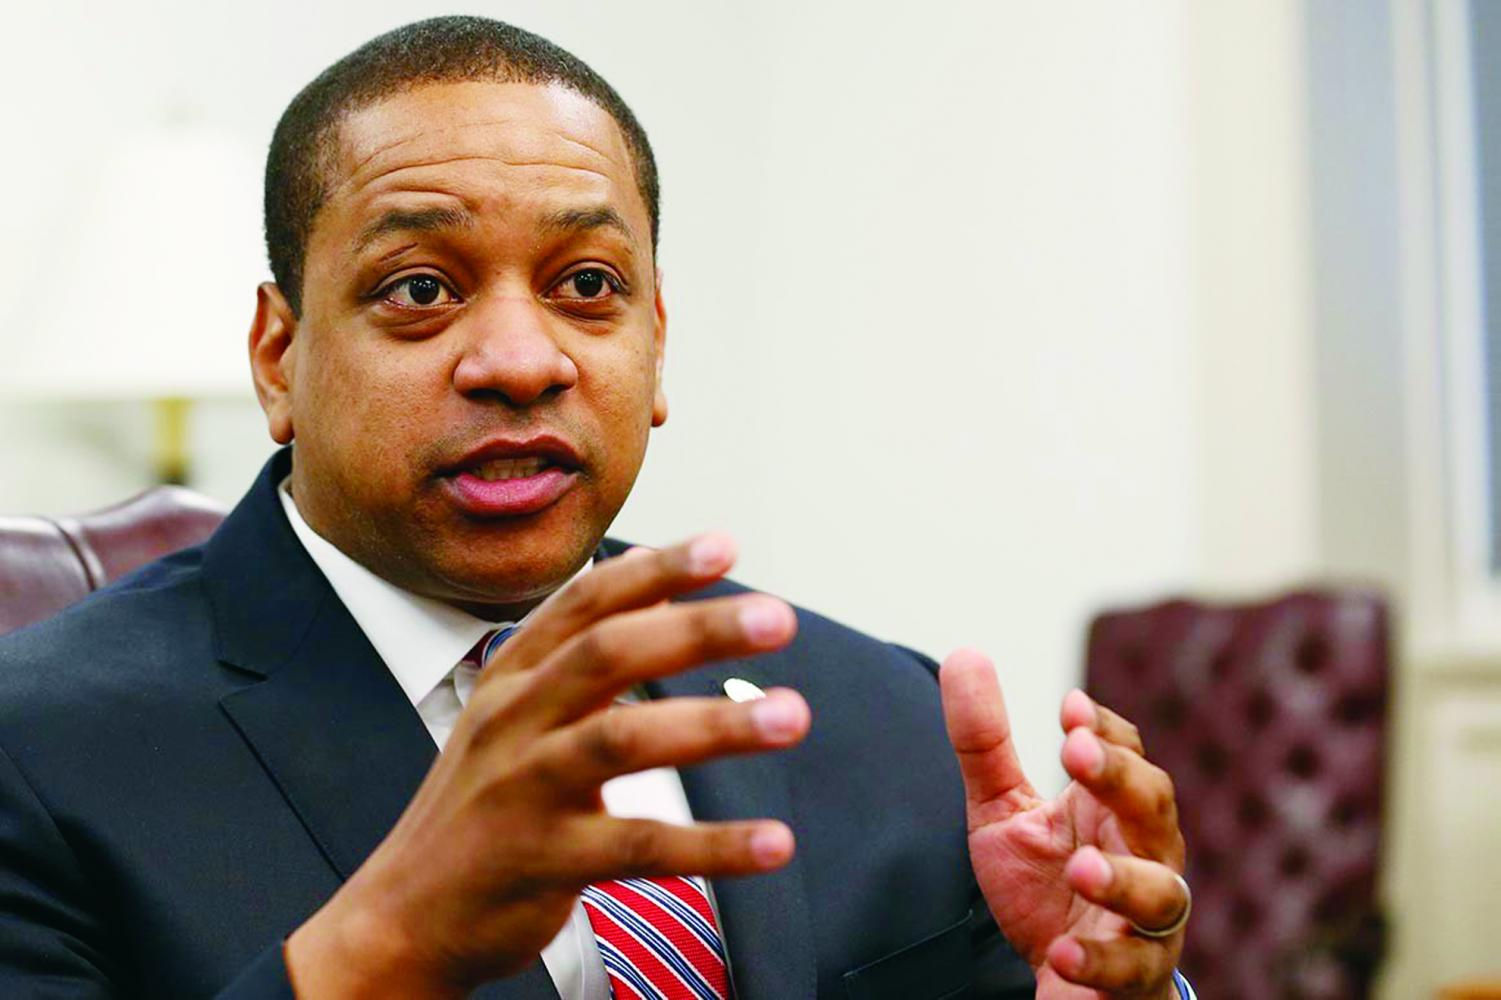 Virginia's Lt. Govenor Justin Fairfax has been accused of sexual assault by Vanessa Tyson, a political science professor